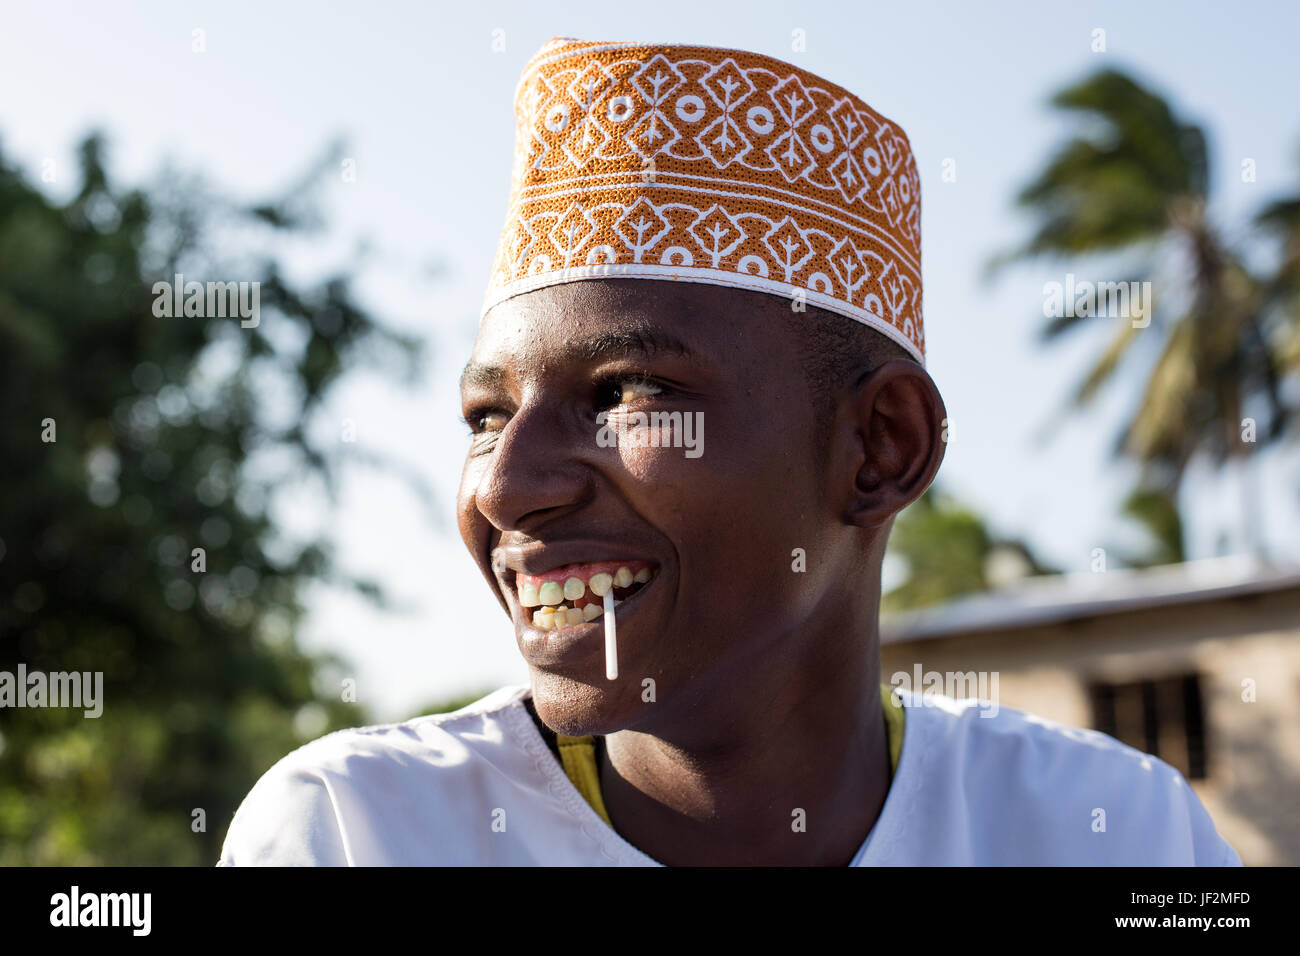 Portrait of young boy dressed in traditional kanzu and kofia (embroidered hat) attends the Maulidi celebrations - Stock Image